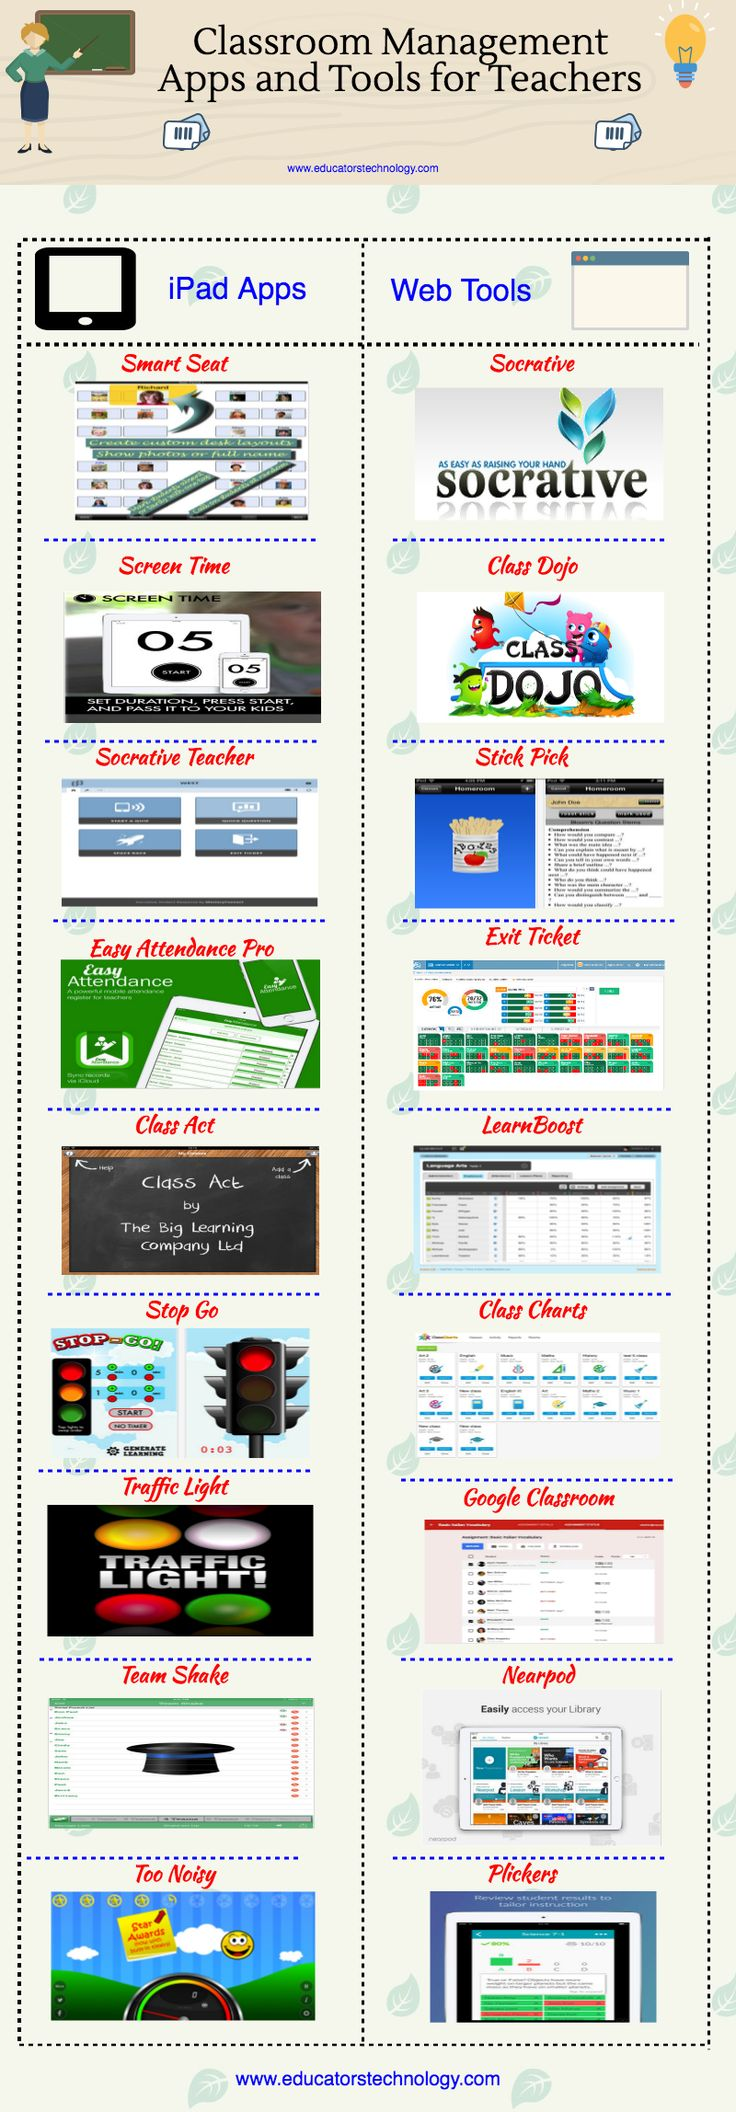 A Good Infographic Featuring Some of The Best Classroom Management Apps and Tools